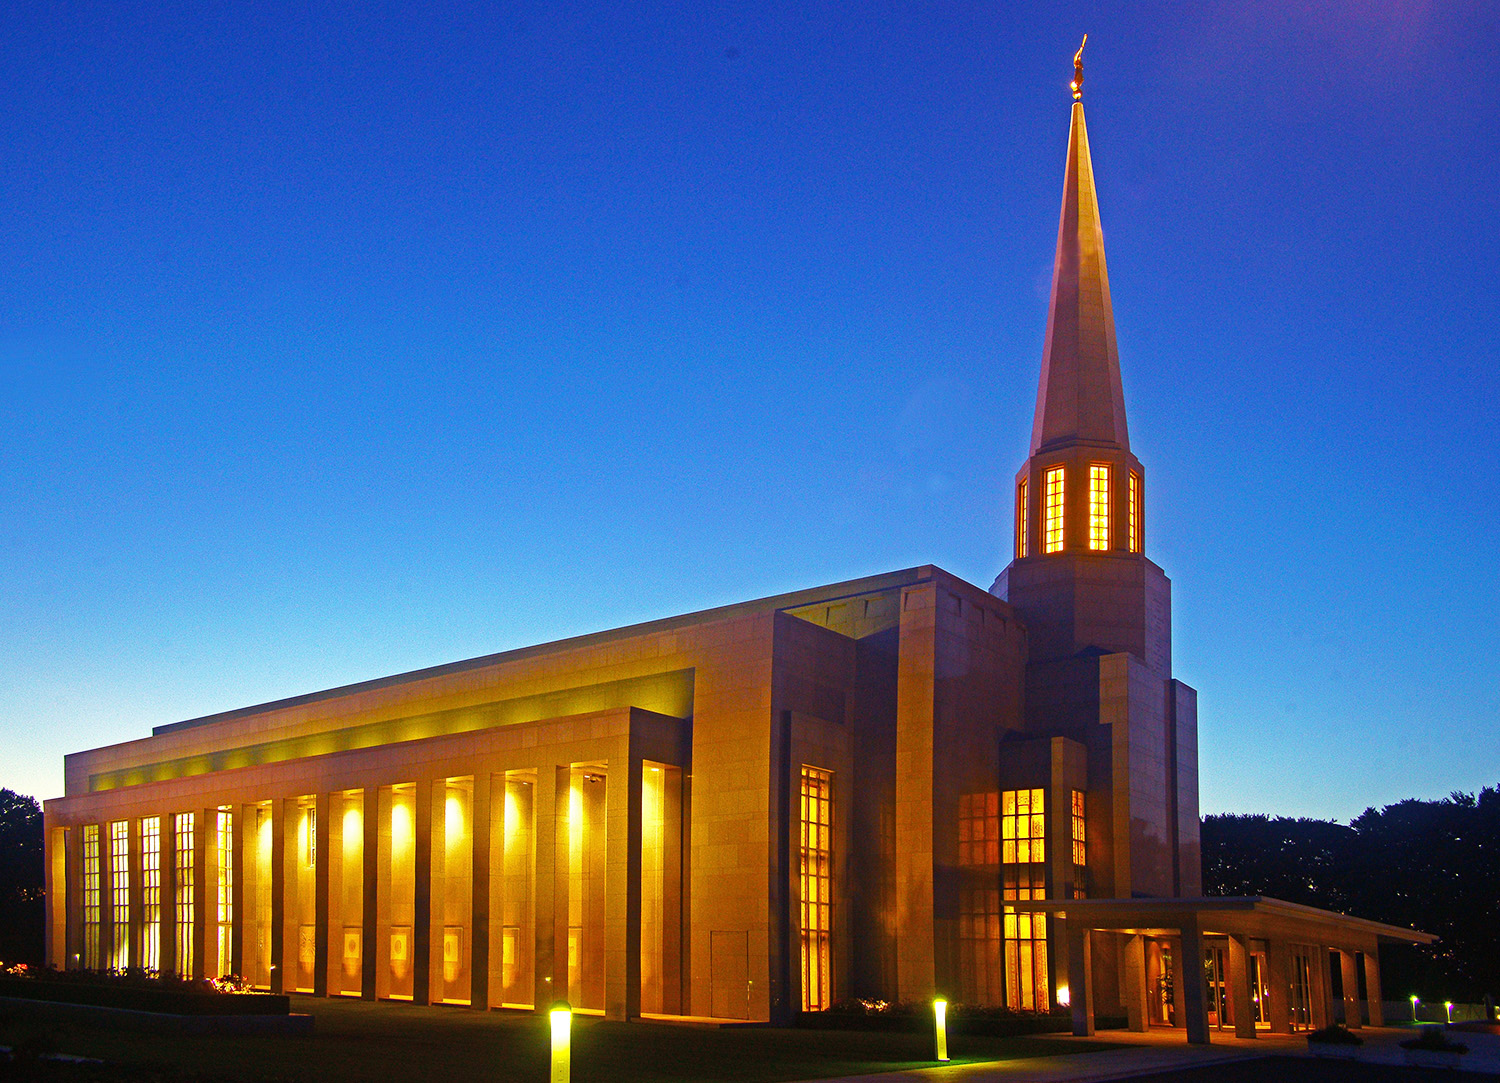 Preston England Temple because it will be the first temple that I will